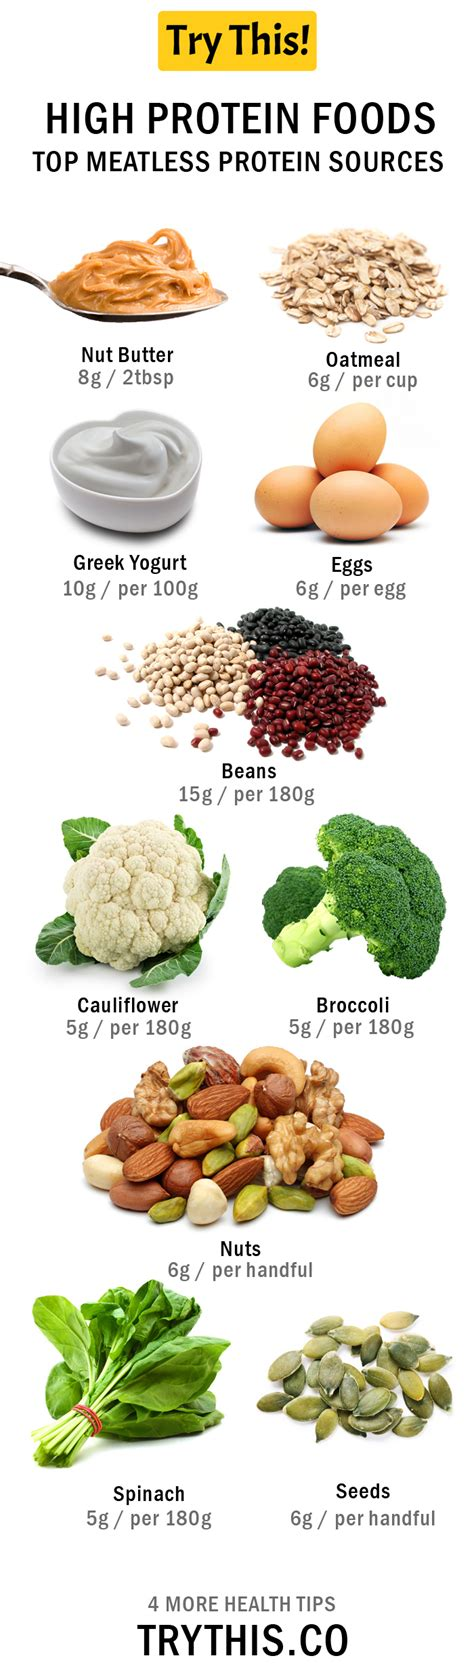 best high protein food high protein foods top meatless protein foods health tips try this